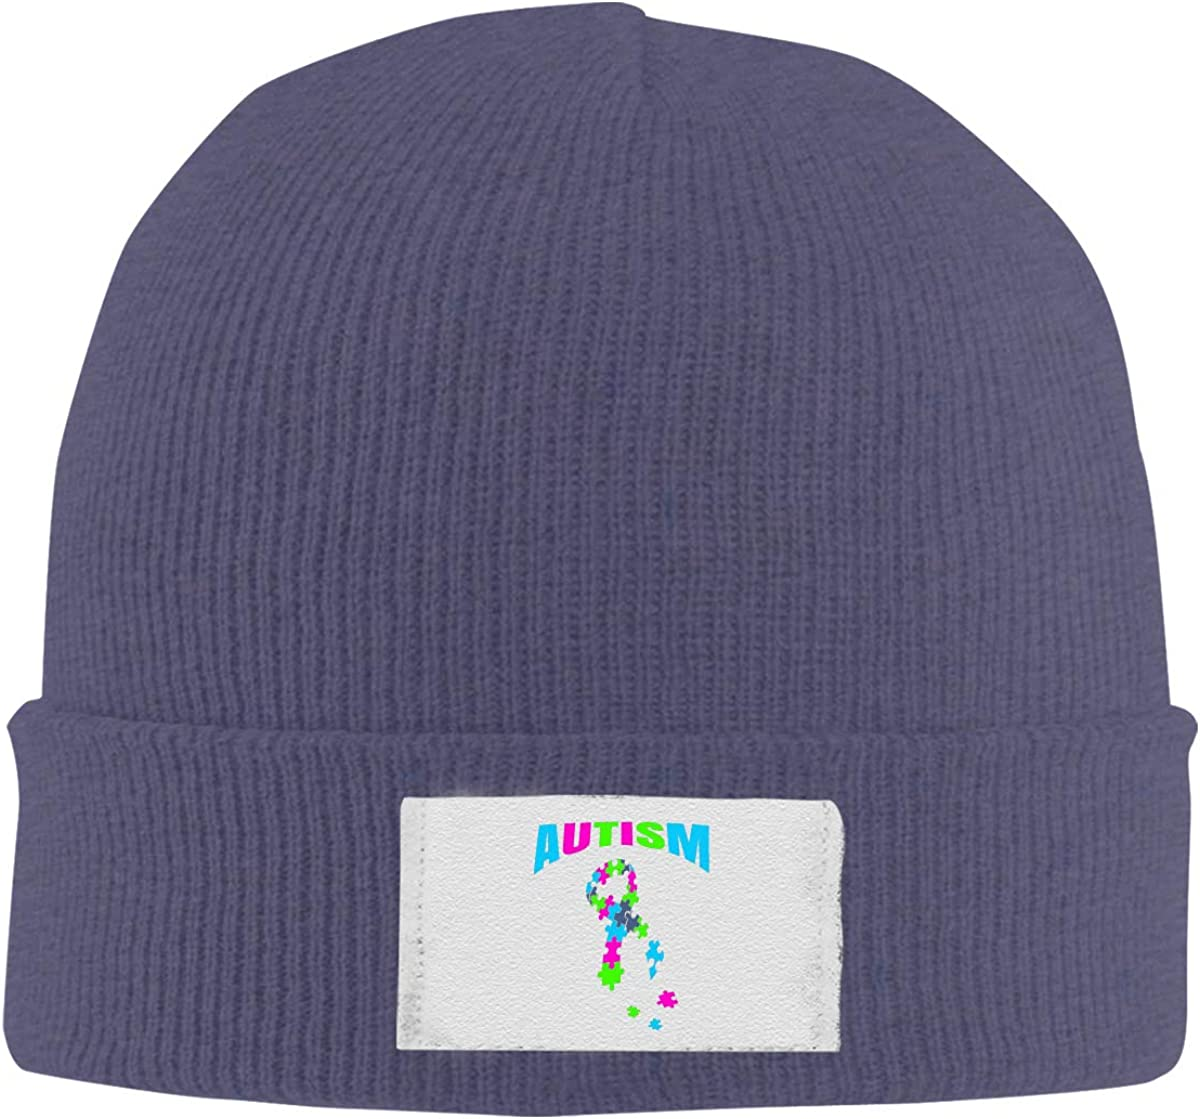 RZMdSG Autism Awareness Puzzle Pieces Unisex Winter Printed Warm Knitting Hats Skull Cap